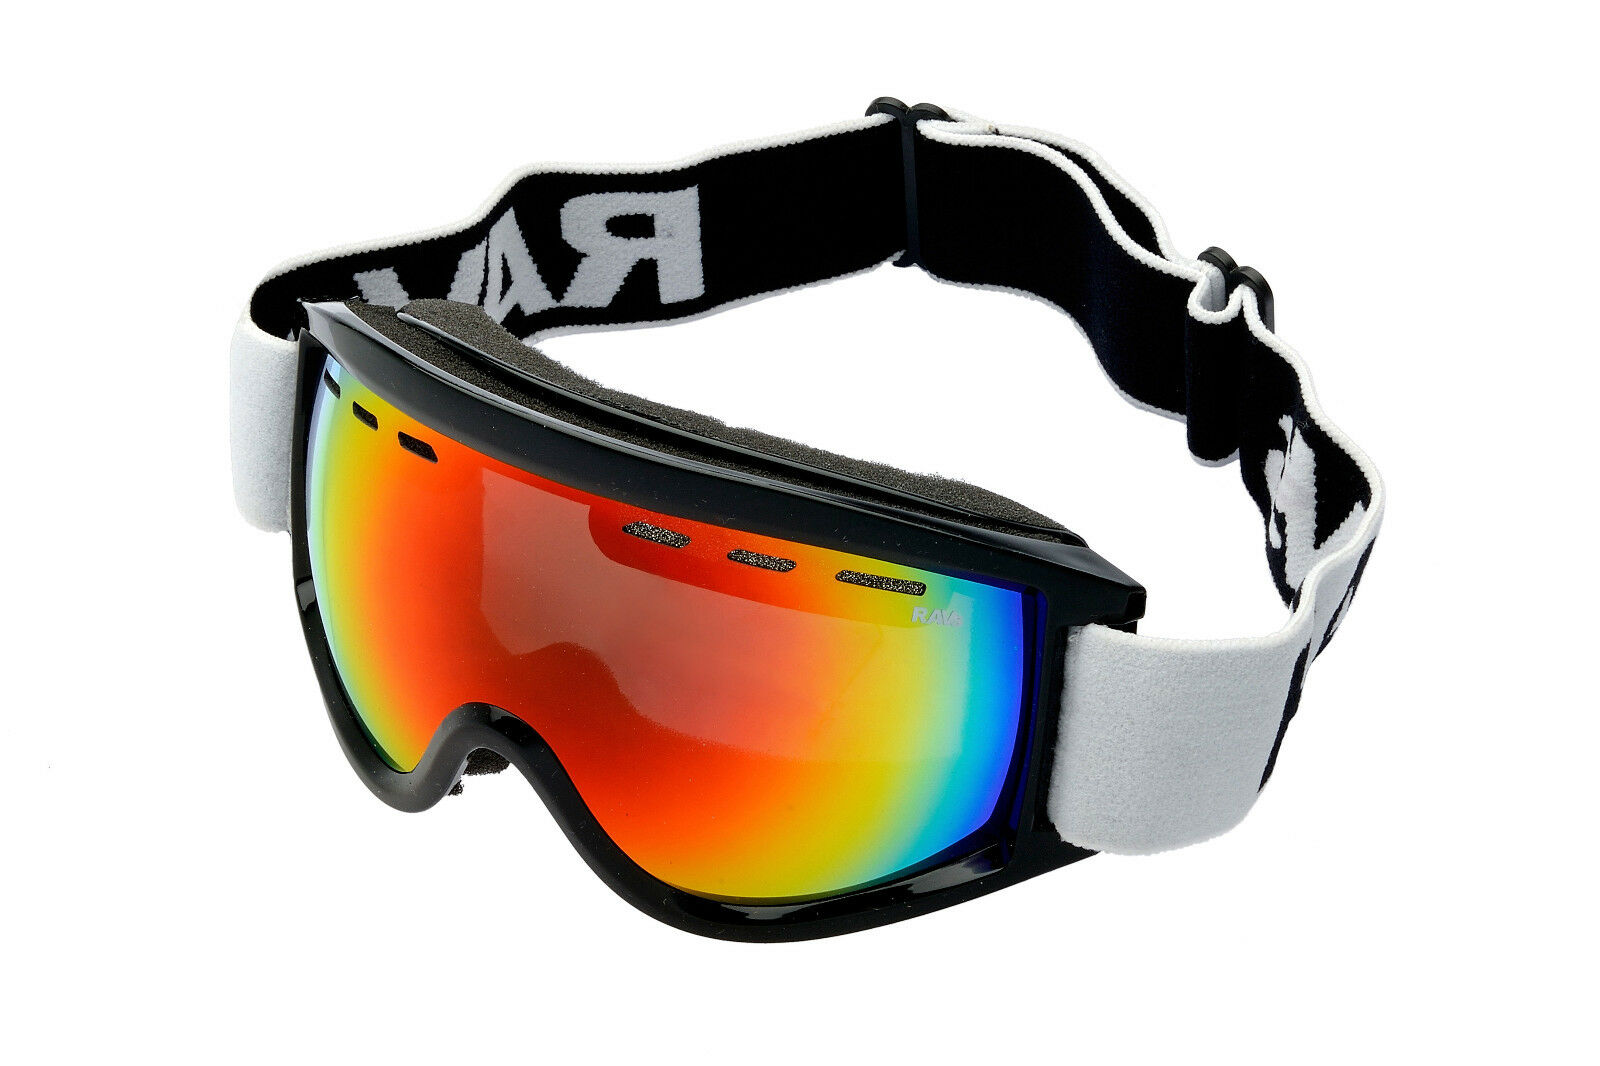 Ravs Unisex Ski Glasses and Snowboard Goggles Skiing for all Weather Antifog